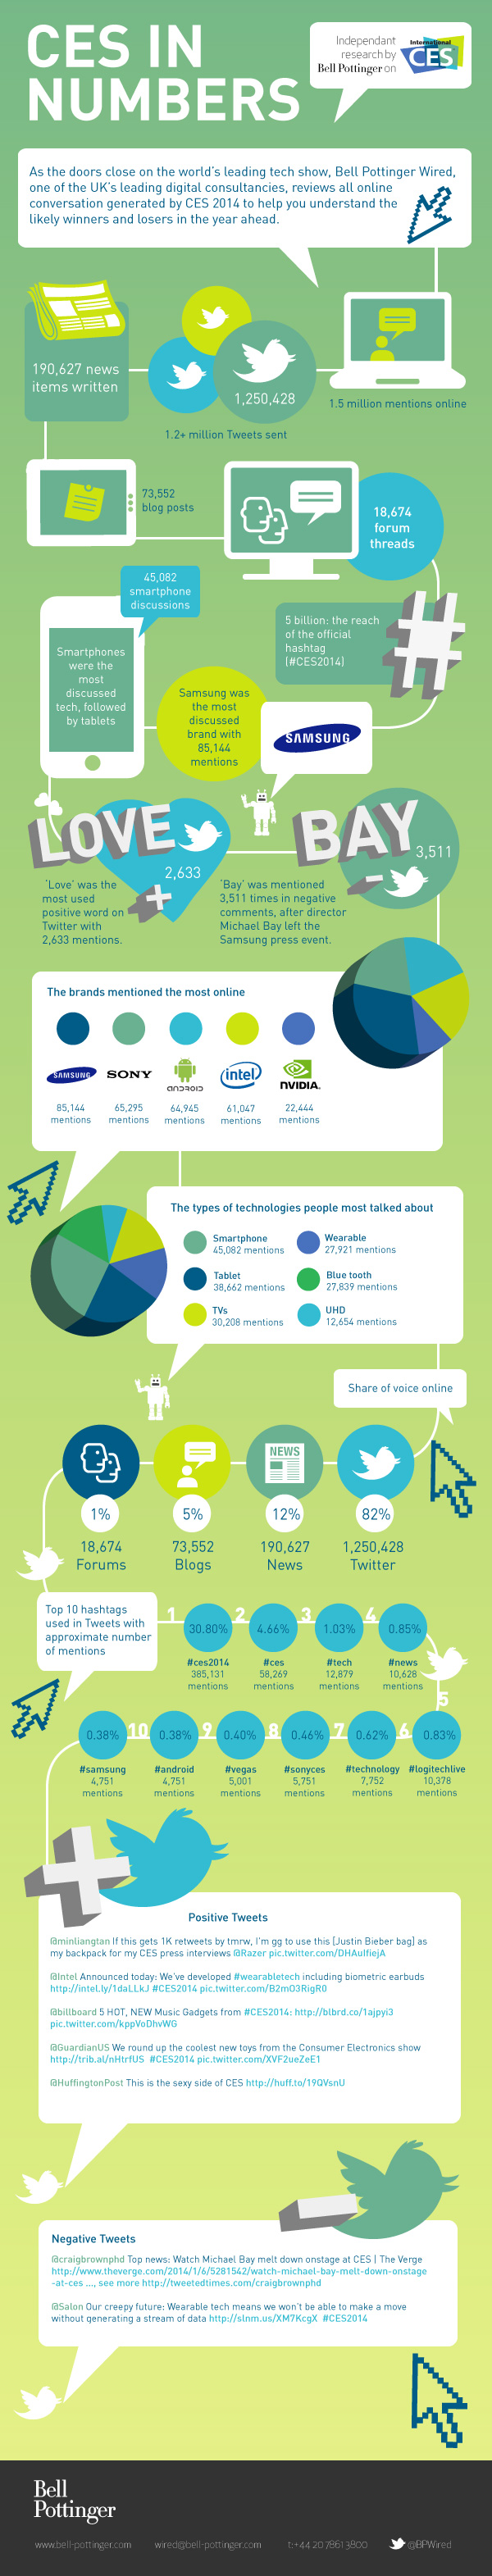 CES-Infographic